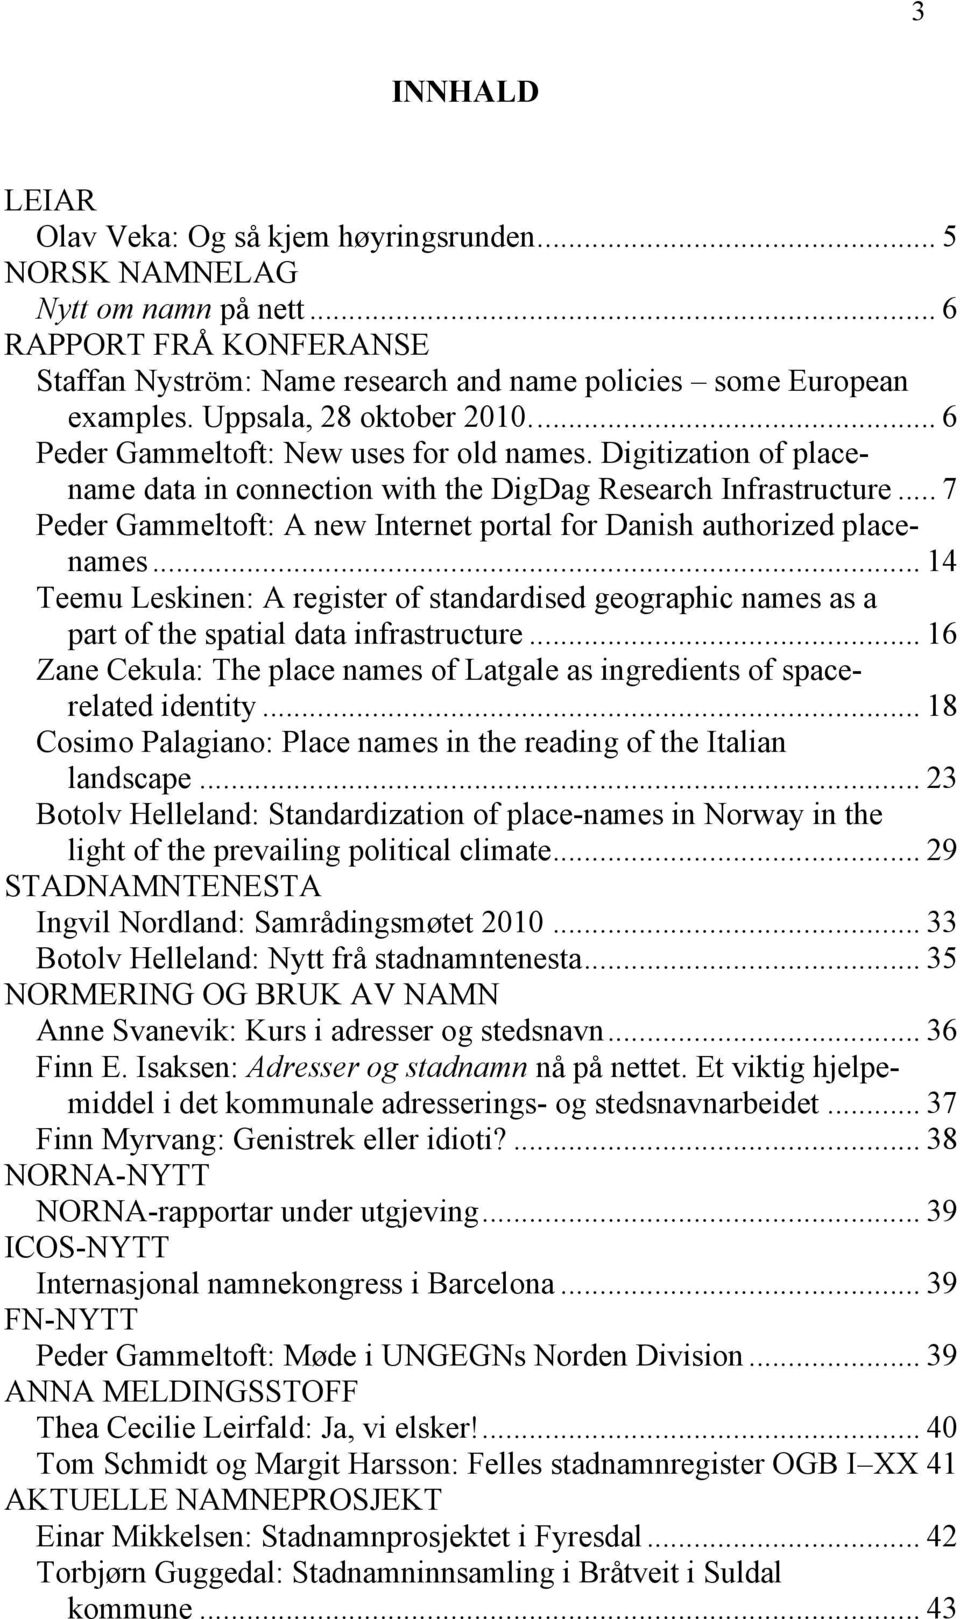 .. 7 Peder Gammeltoft: A new Internet portal for Danish authorized placenames... 14 Teemu Leskinen: A register of standardised geographic names as a part of the spatial data infrastructure.